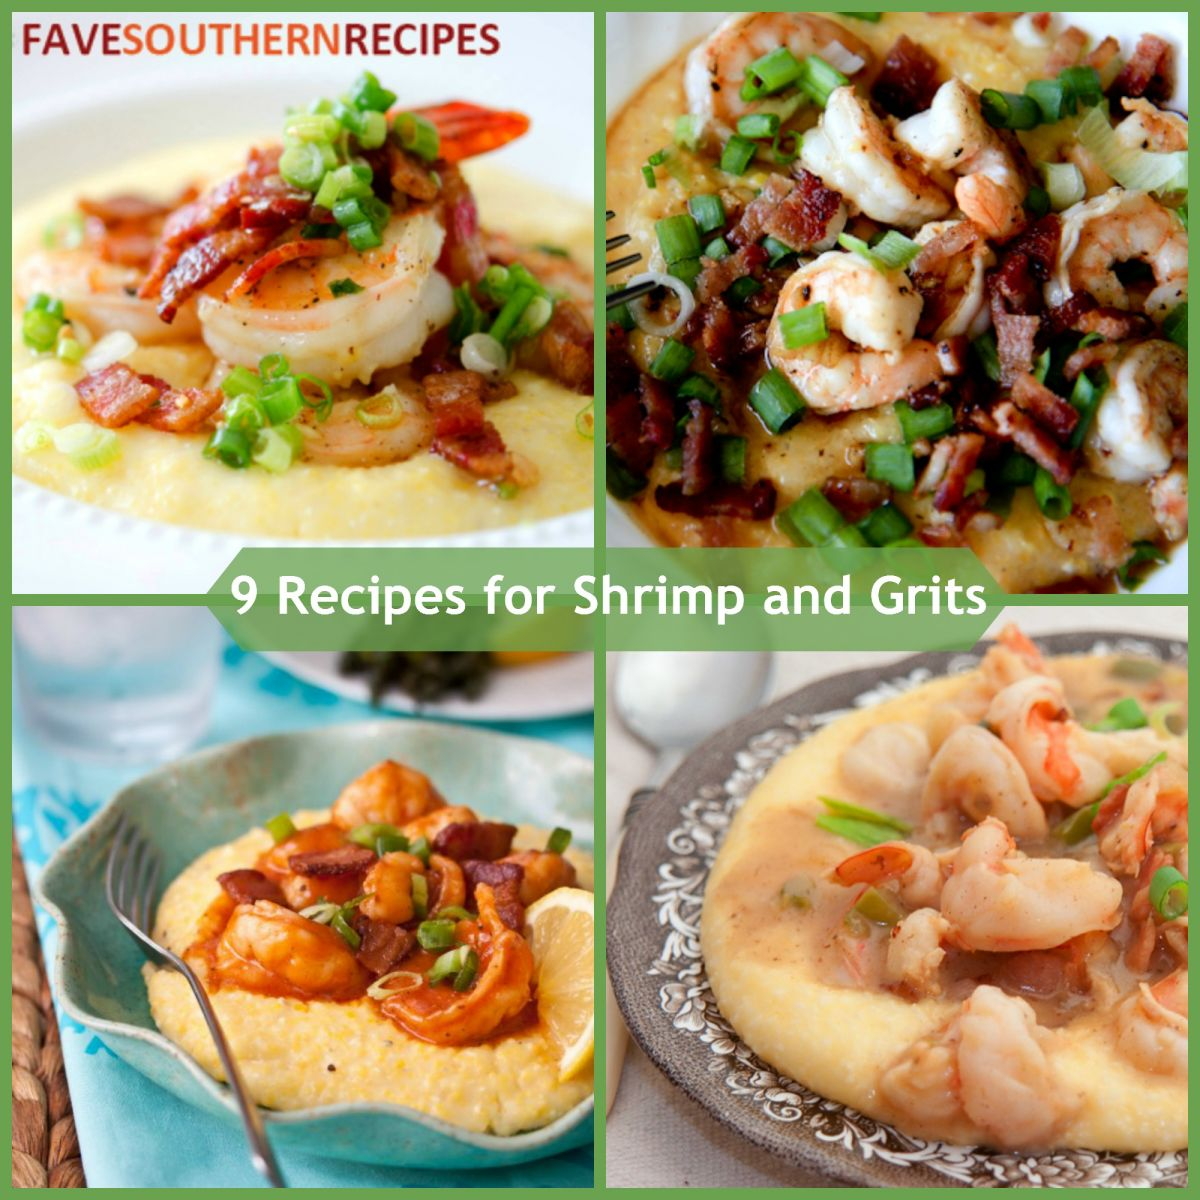 Recipes for Shrimp and Grits